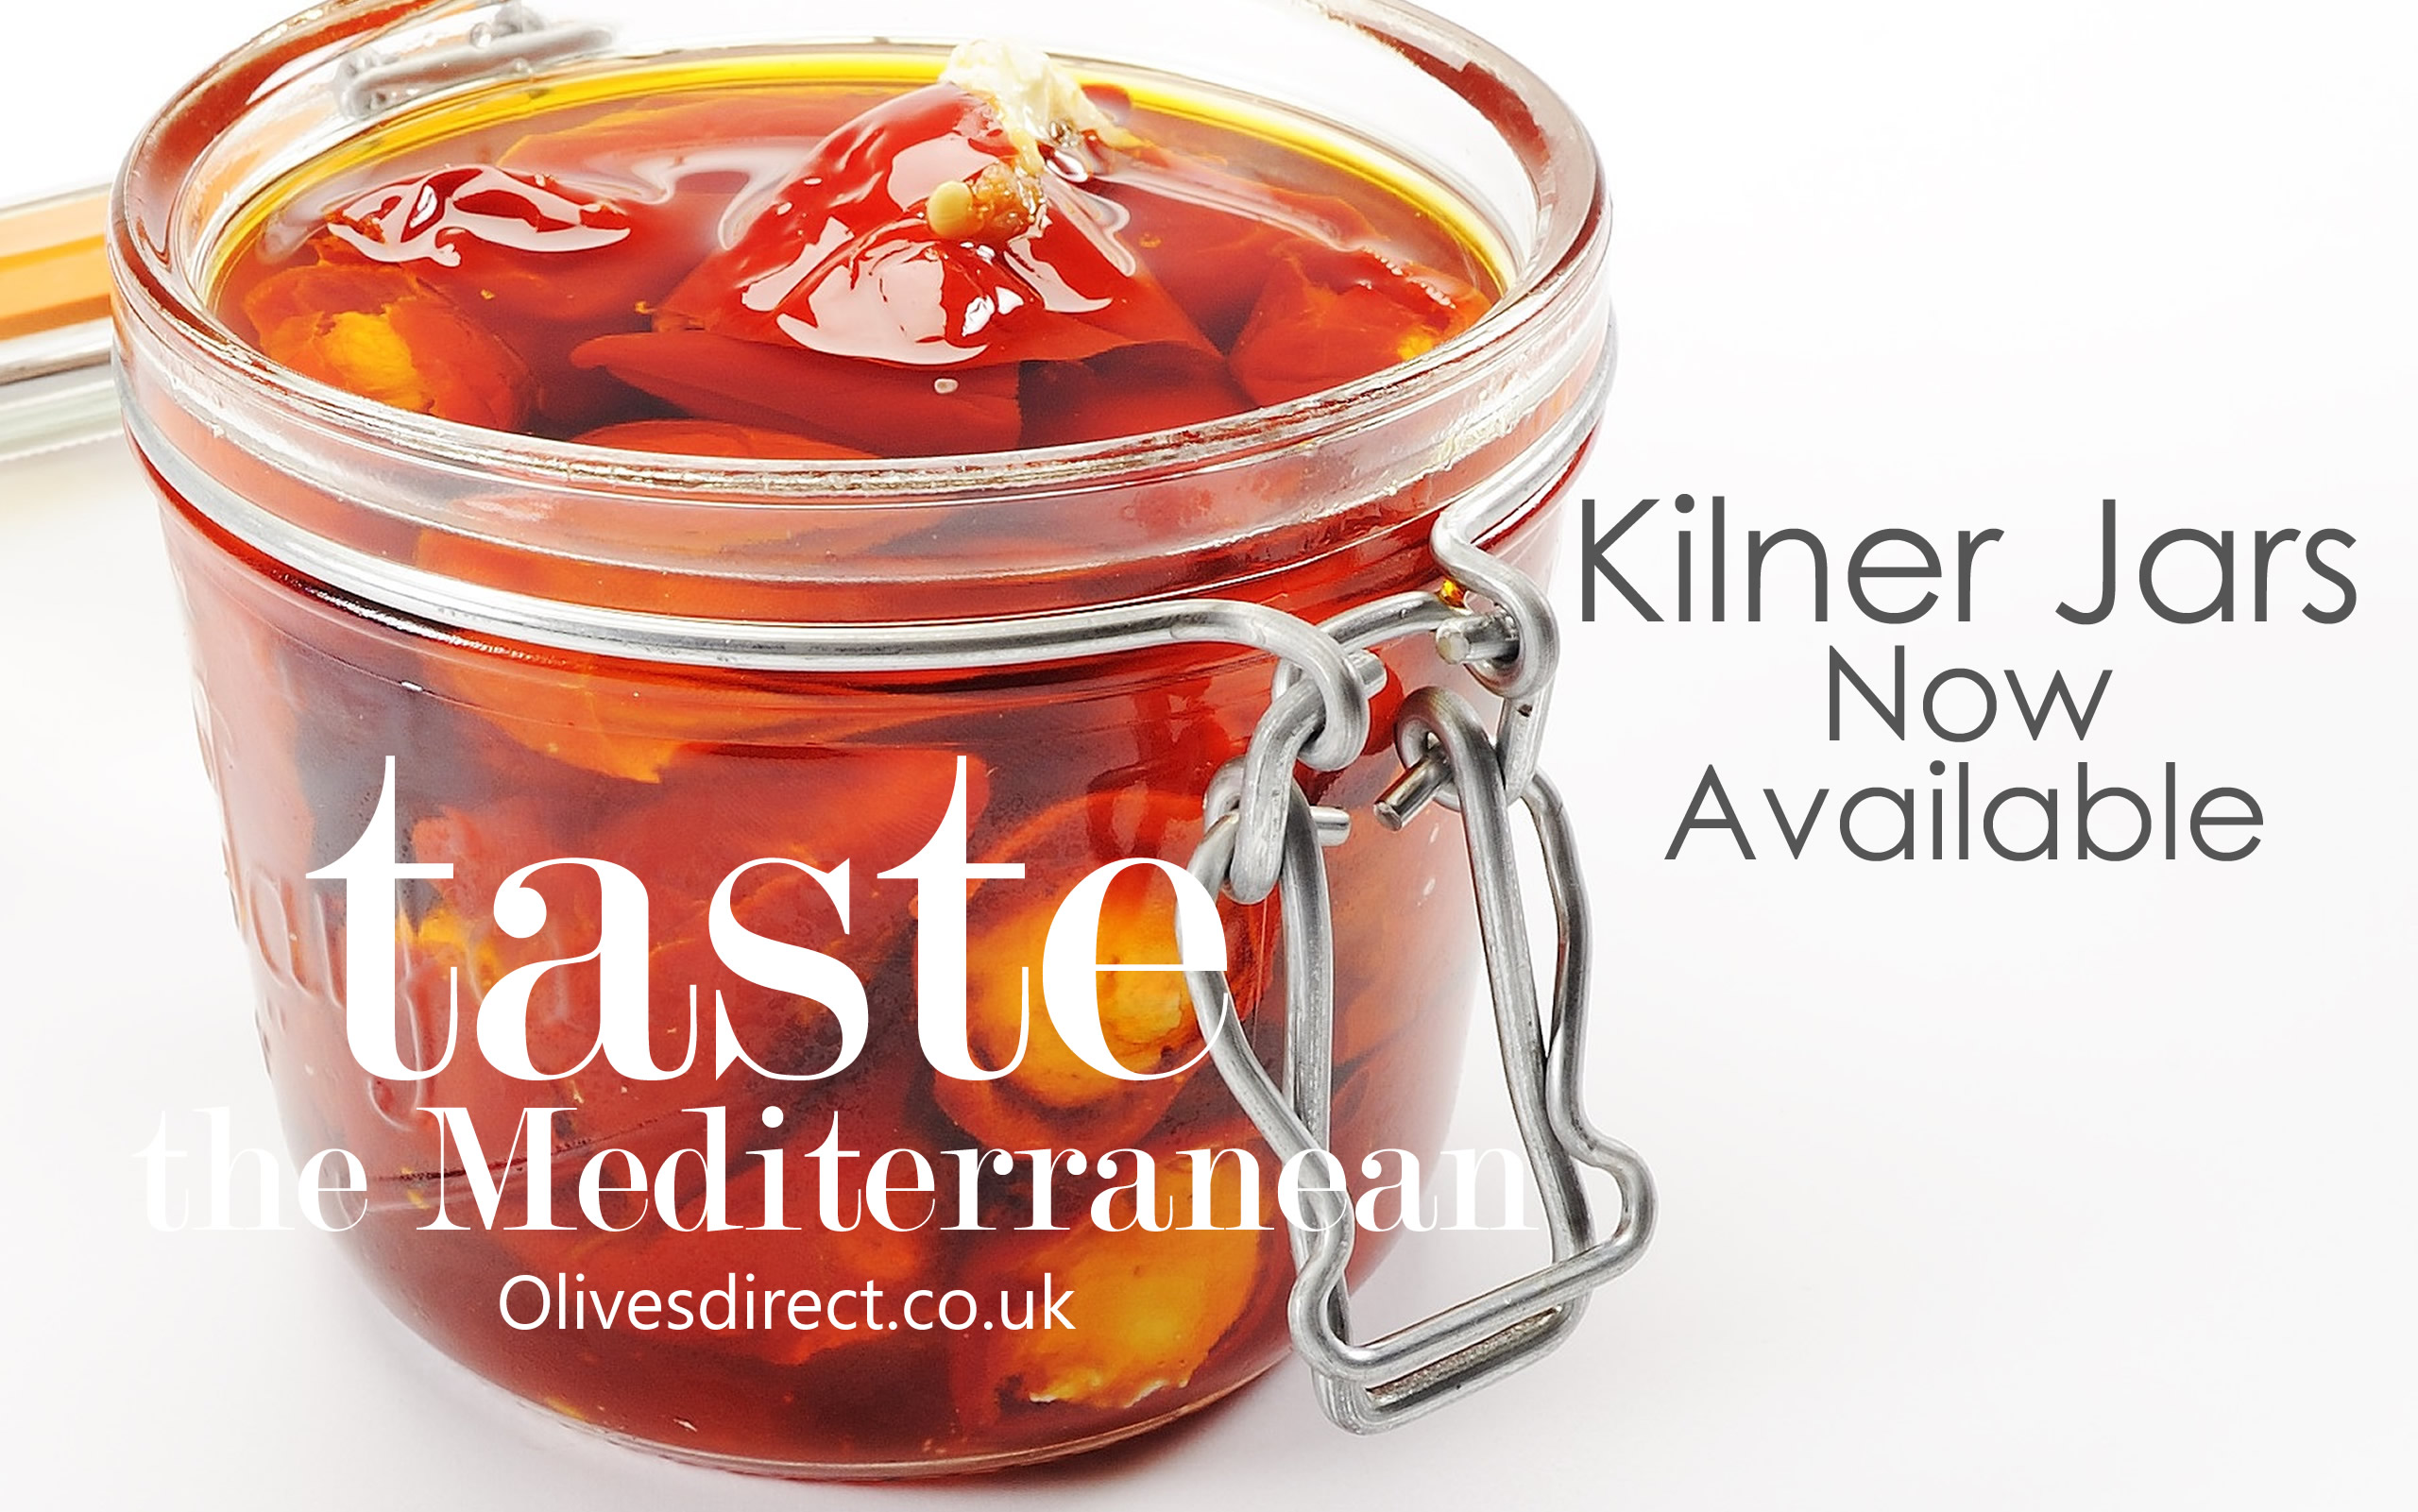 Fresh Olives in Kilner Jars